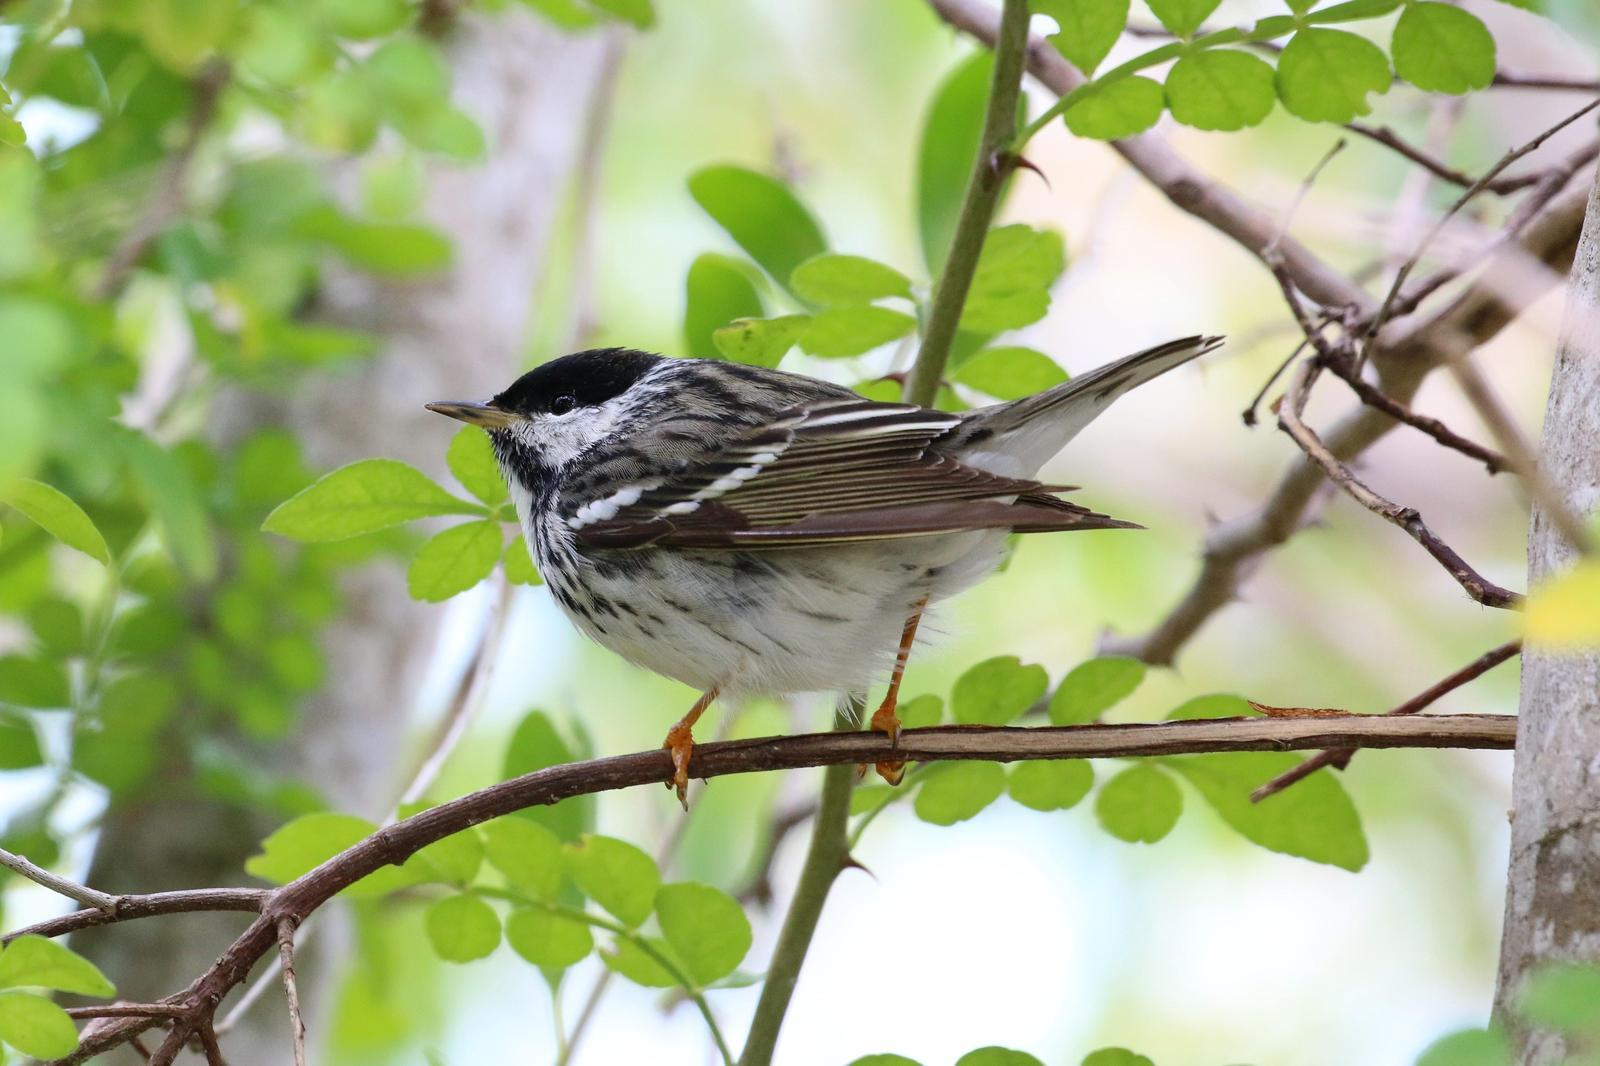 Blackpoll Warbler Photo by Richard Jeffers